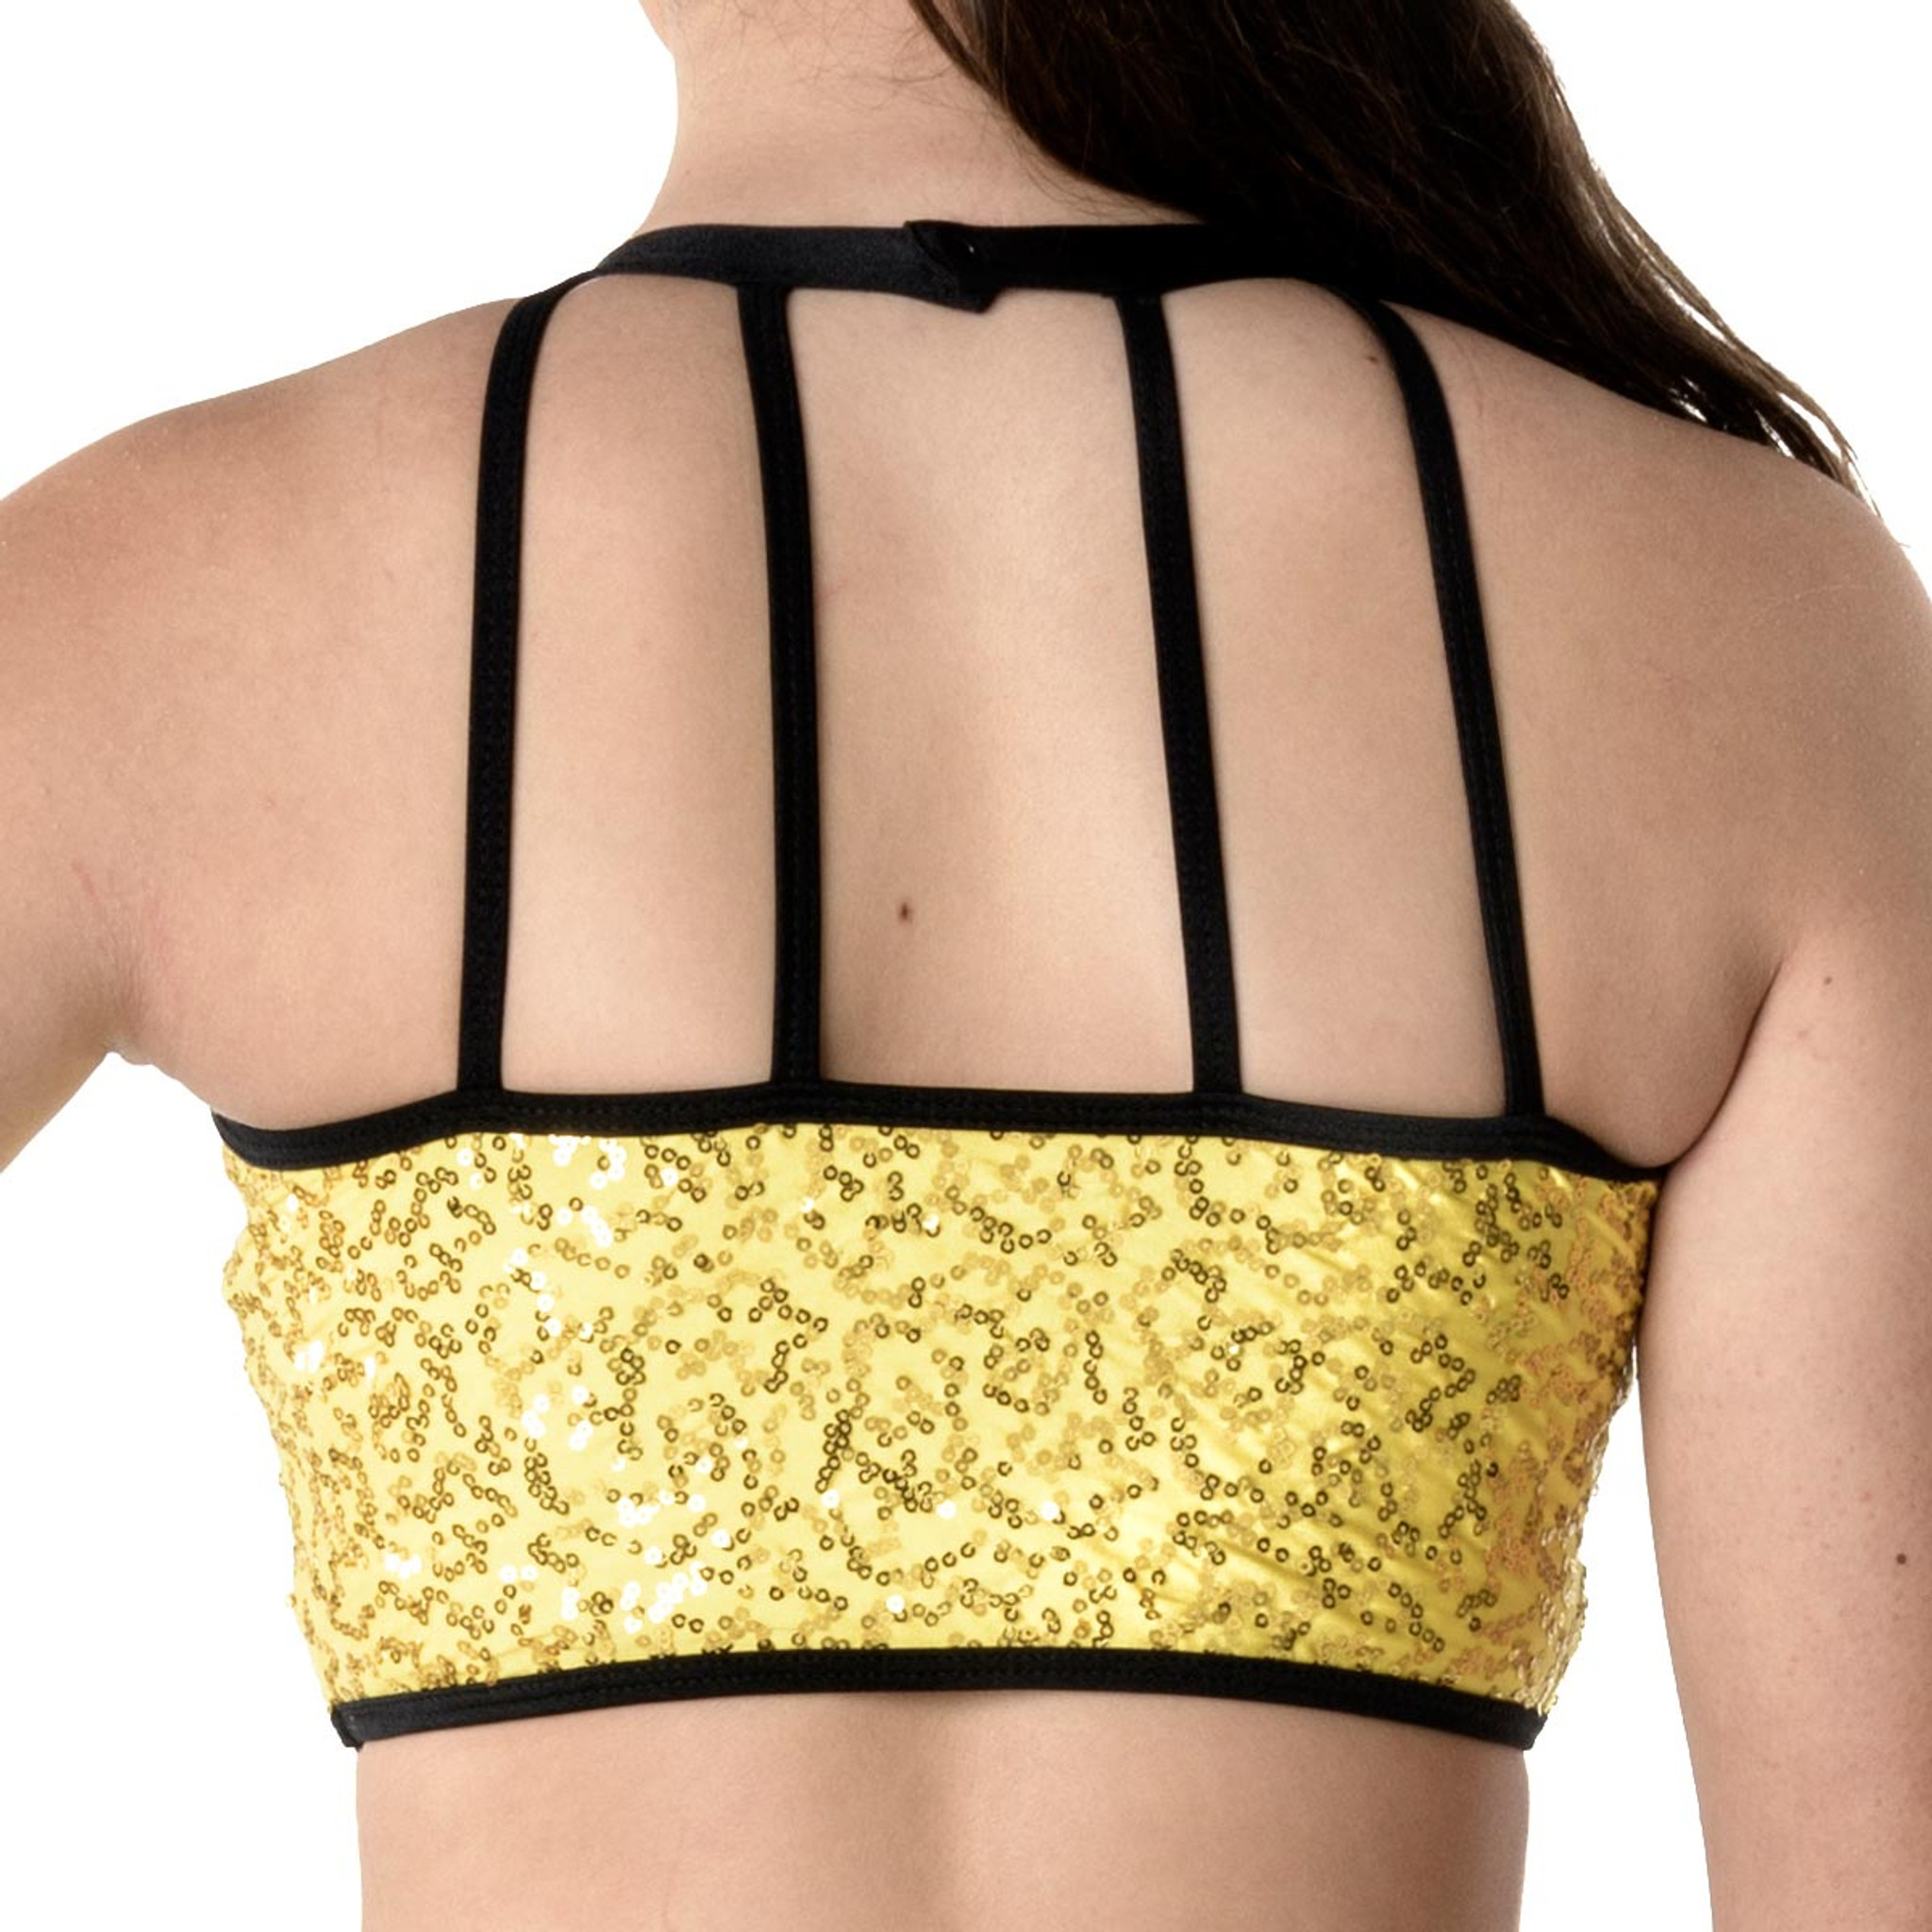 Studio 7 Dancewear Bright Lights Halter Crop Top - Ladies